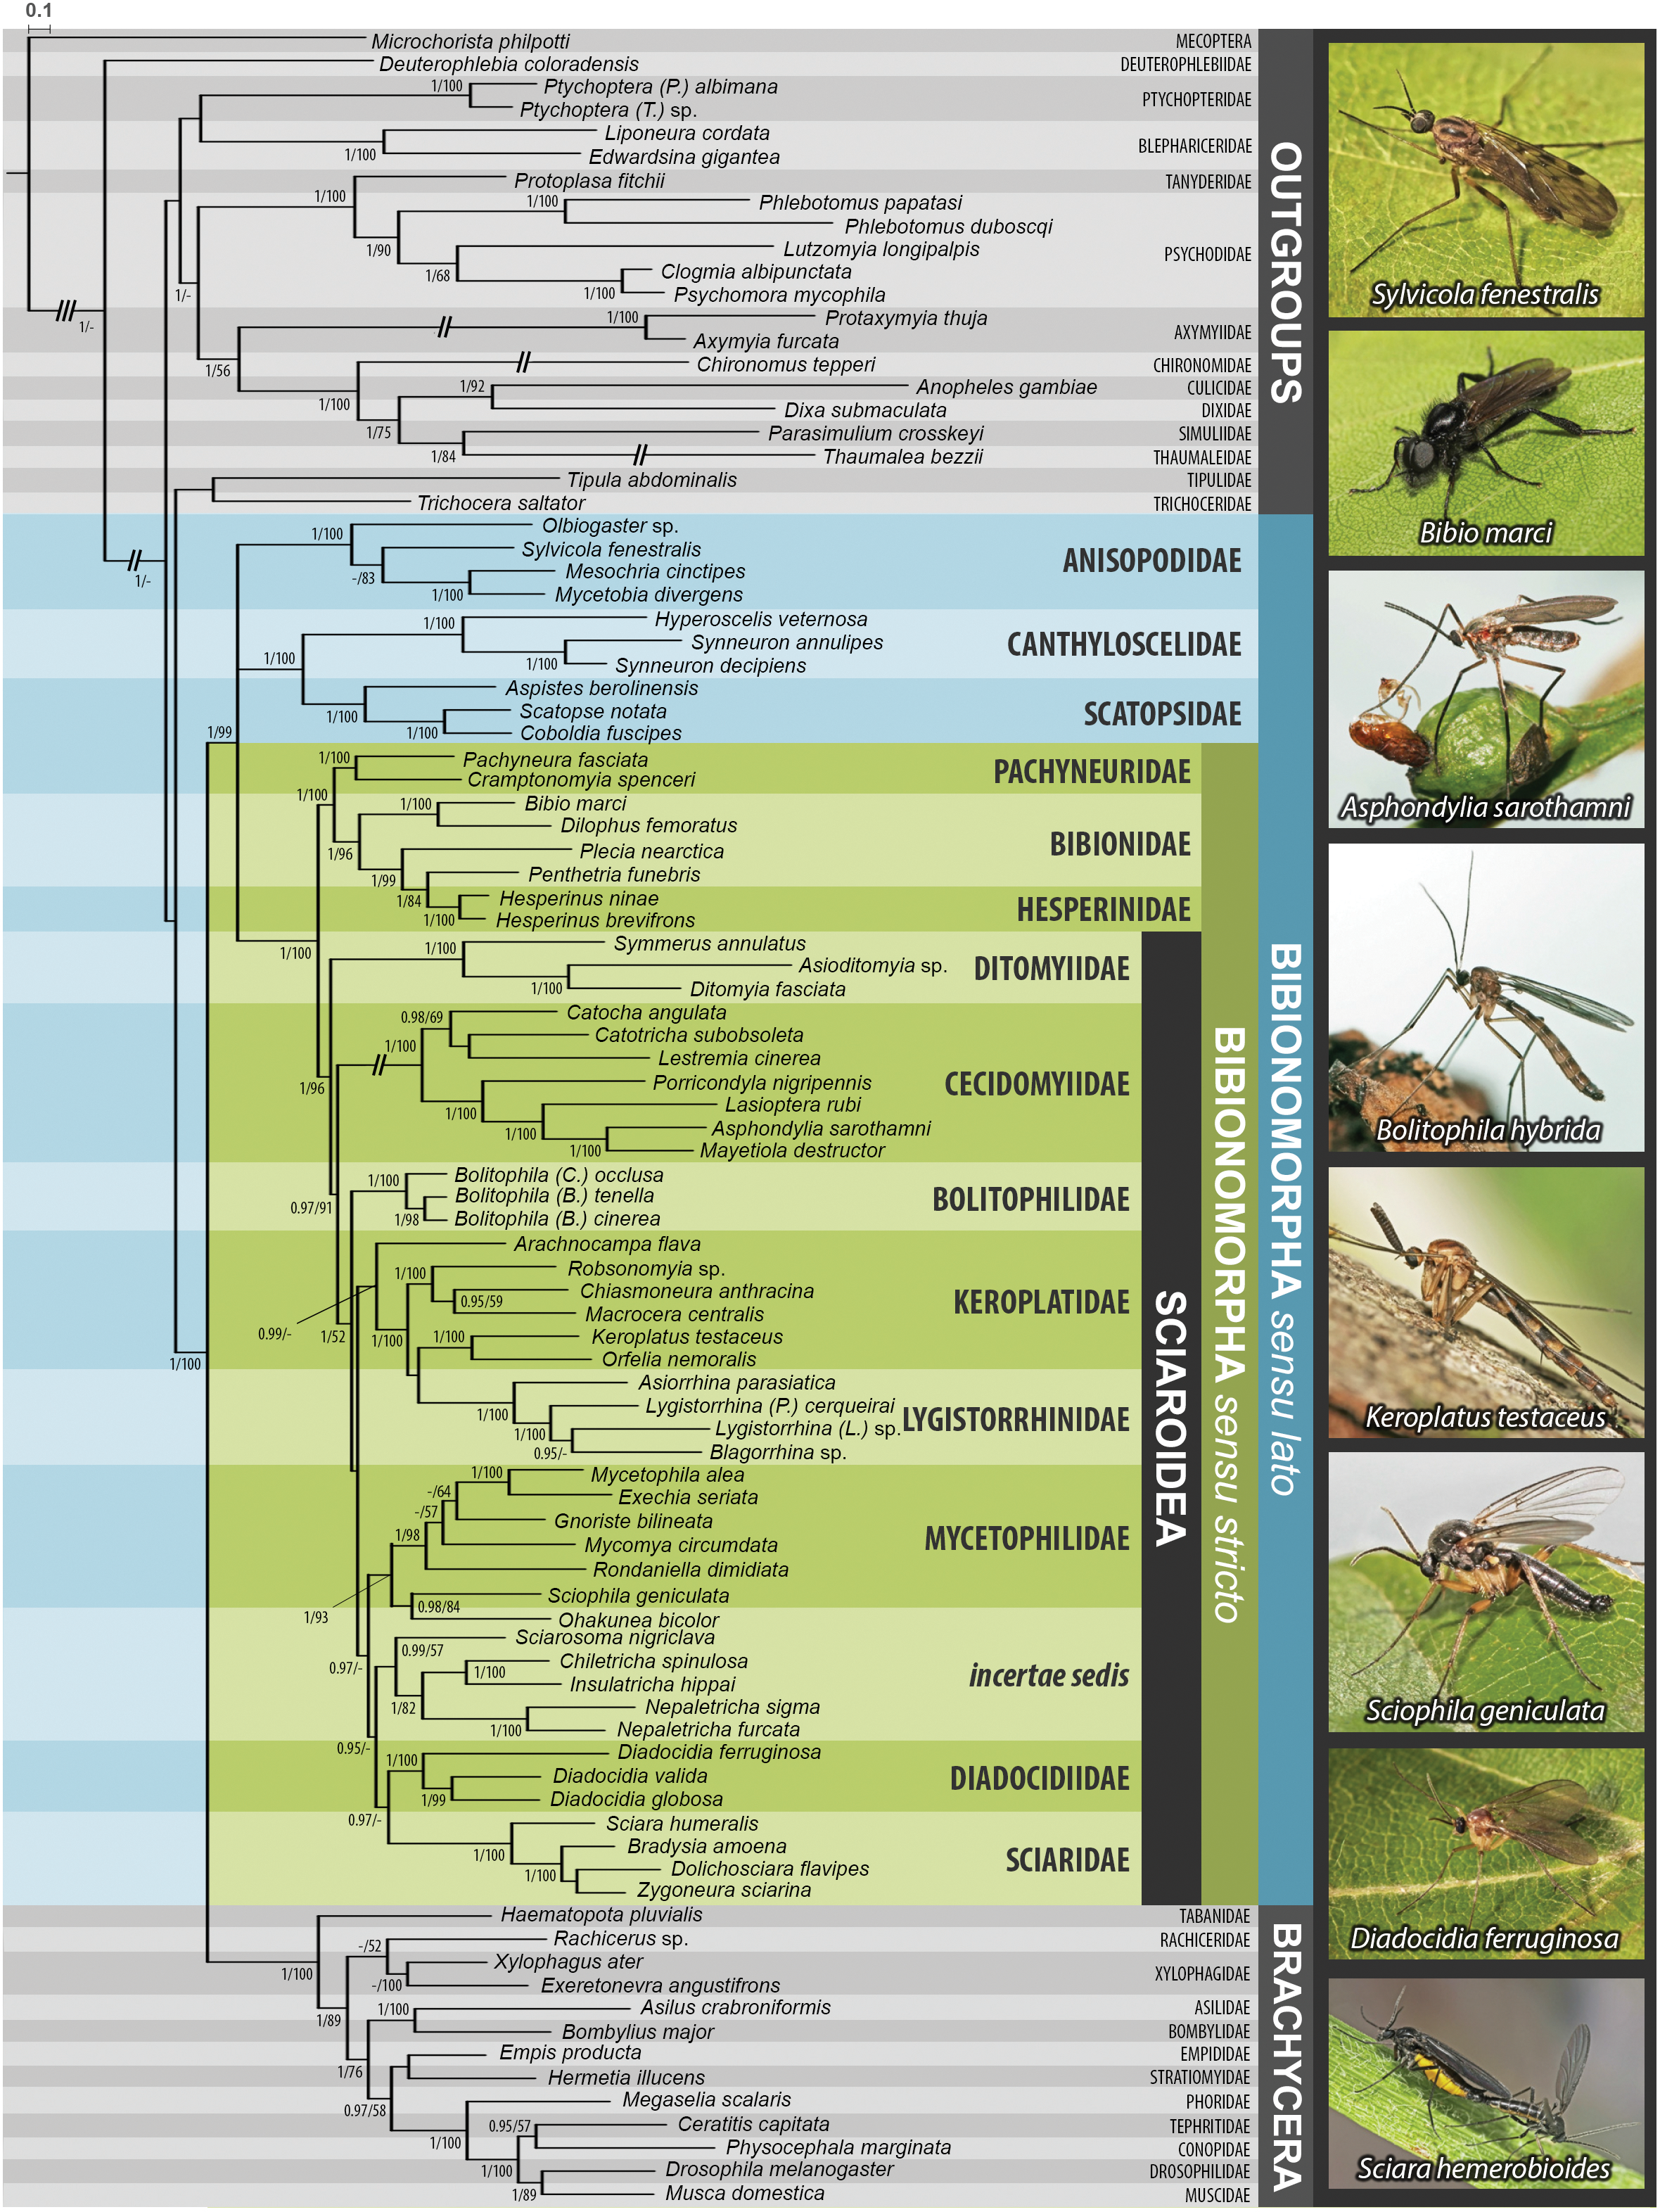 Molecular phylogeny of the megadiverse insect infraorder download full size image fandeluxe Choice Image